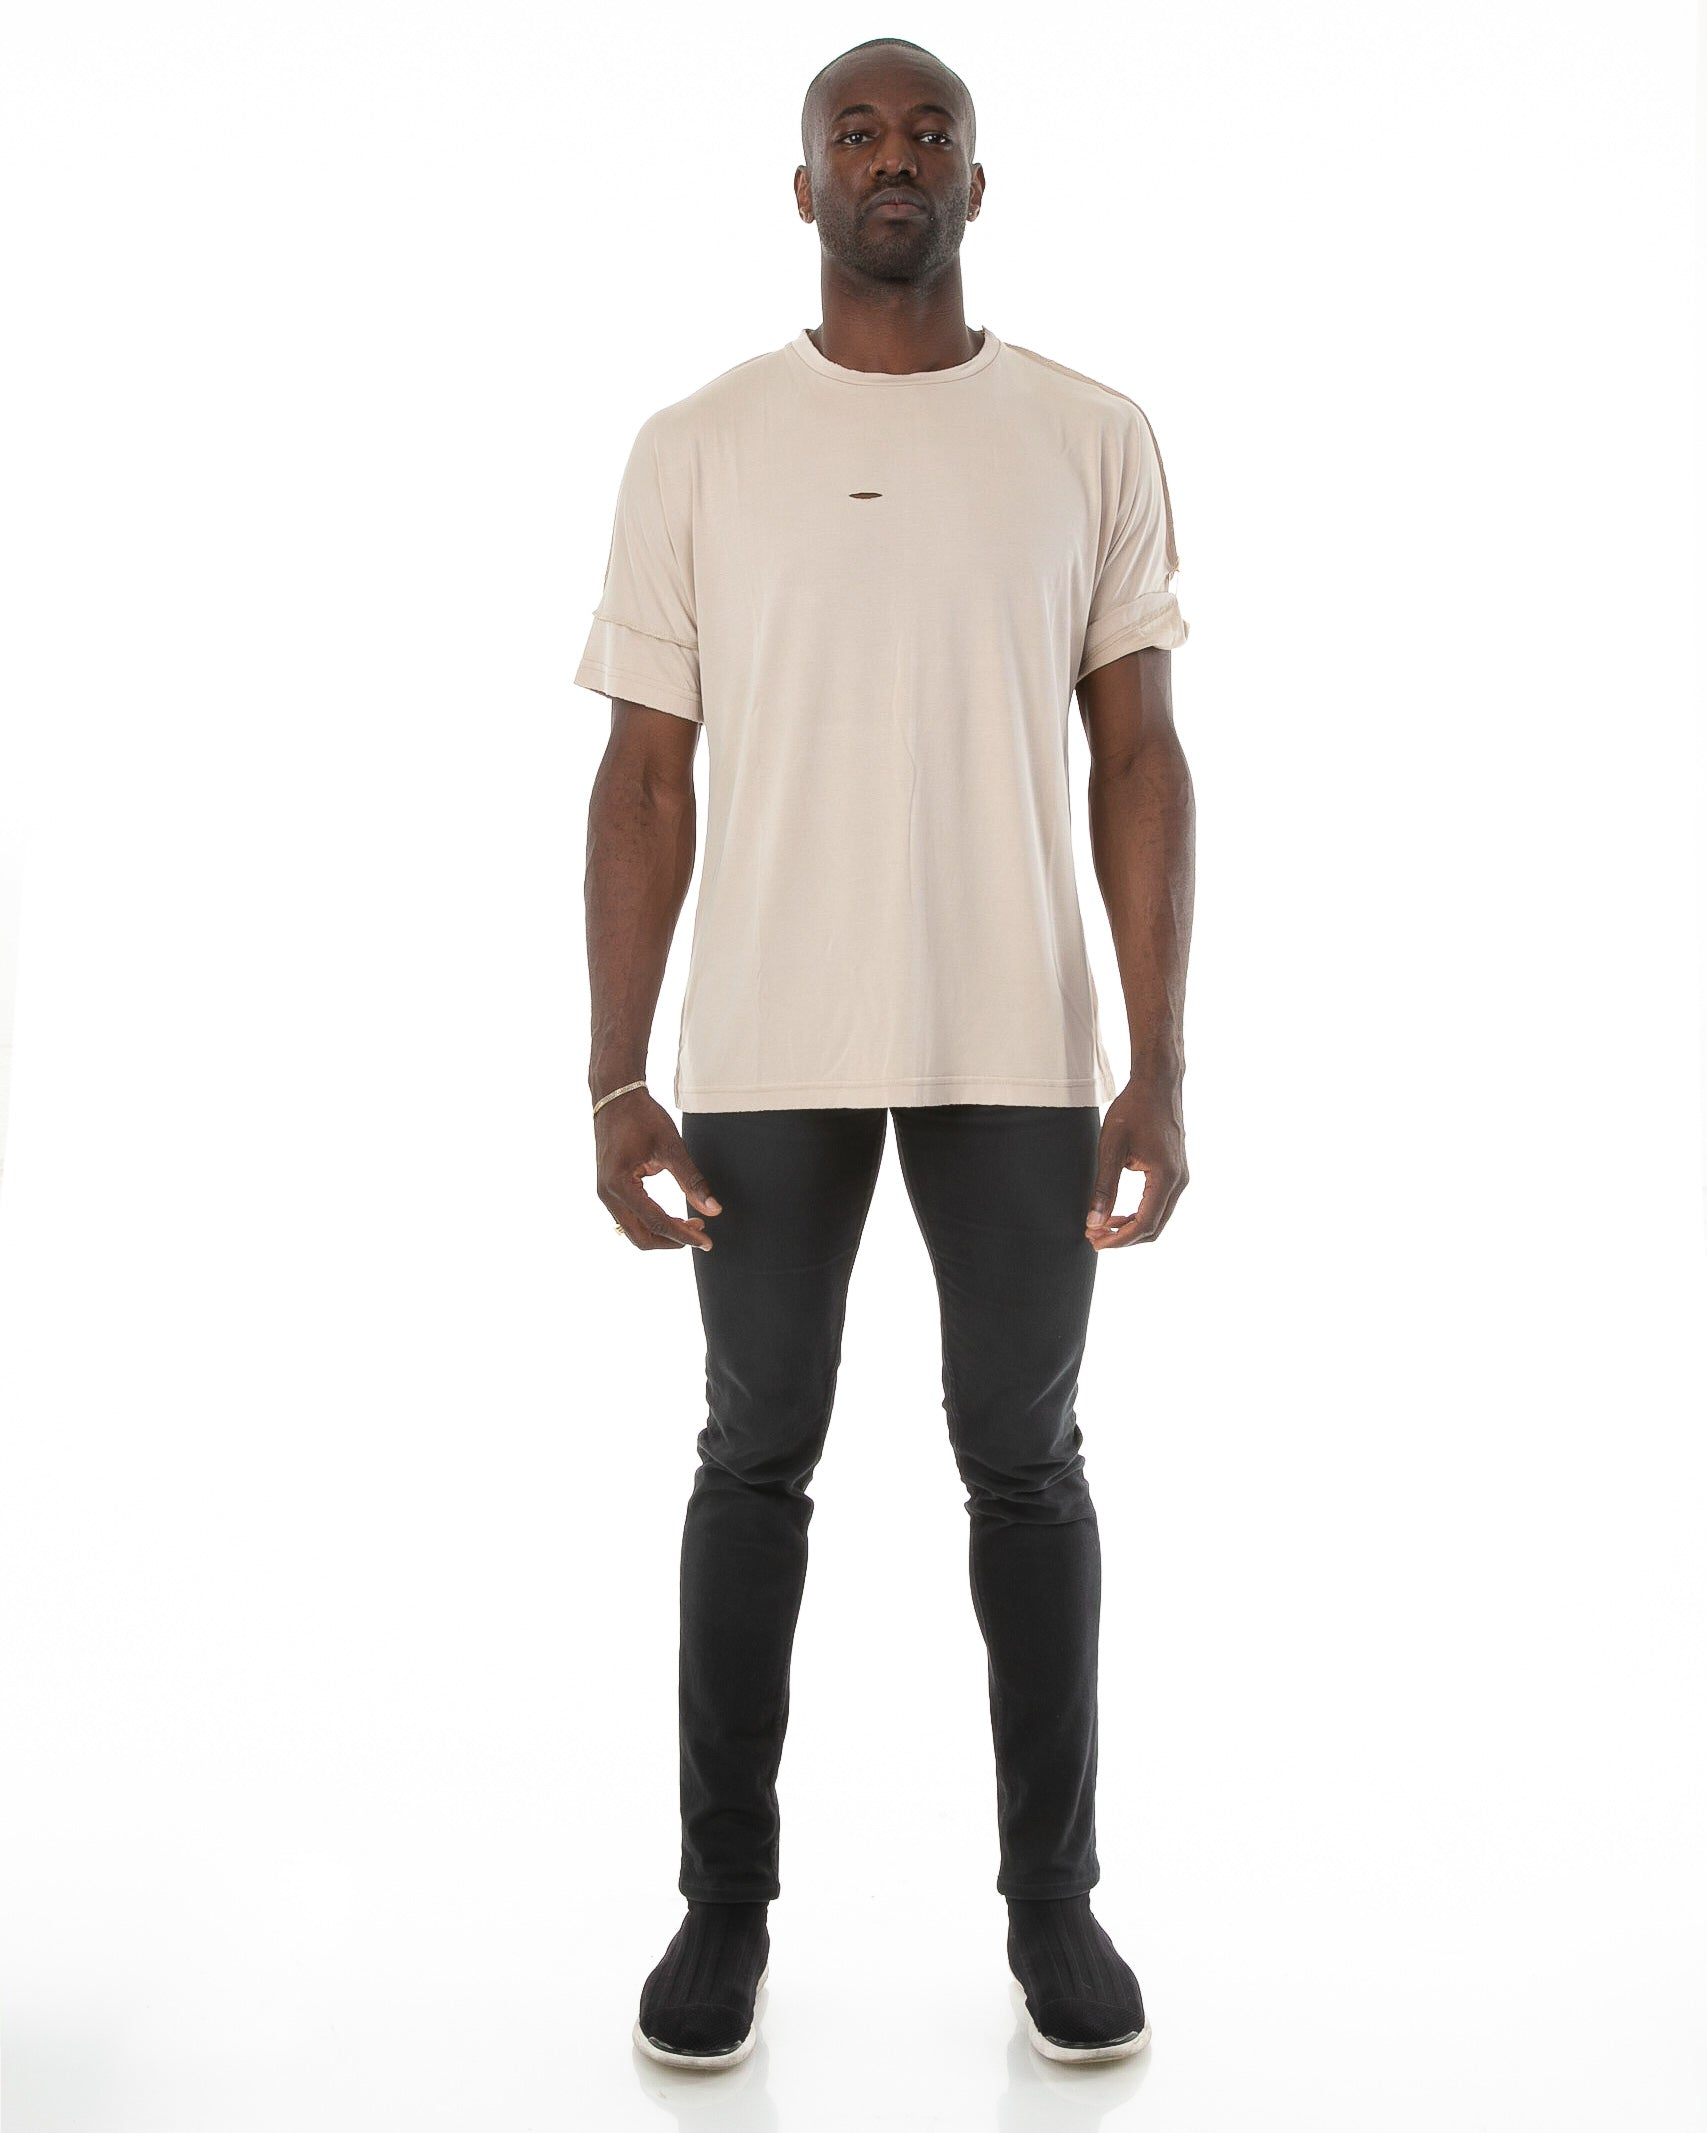 Run Tee in Natural